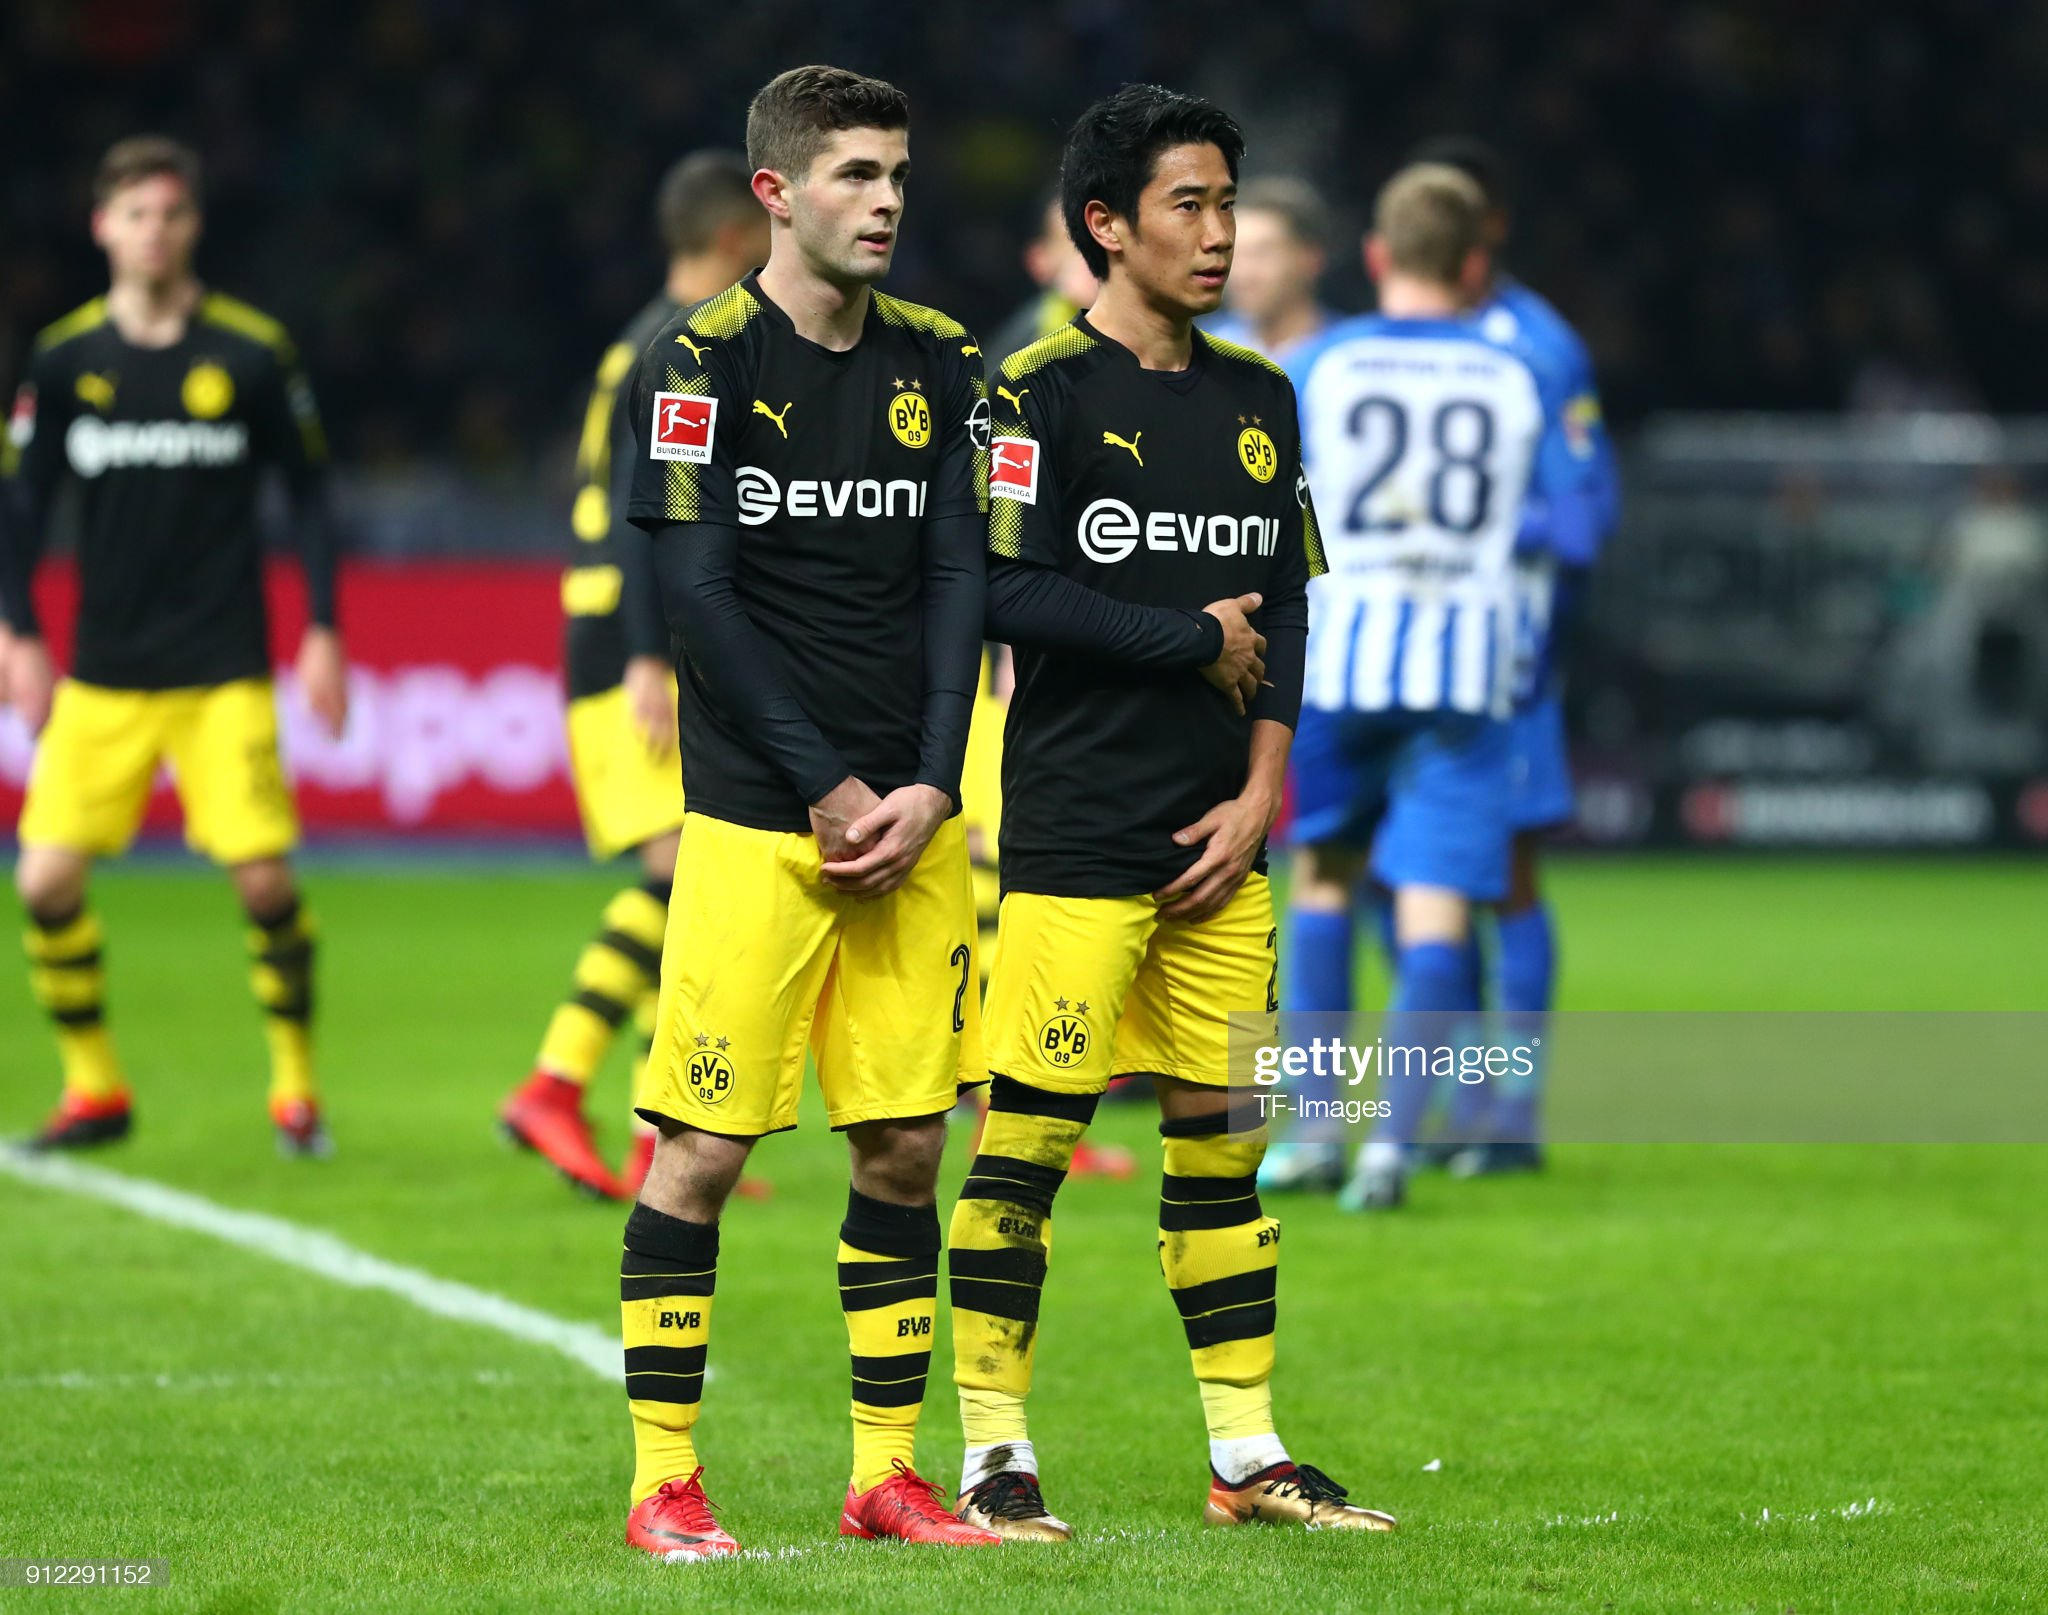 ¿Cuánto mide Shinji Kagawa? - Real height Christian-pulisic-of-dortmund-and-shinji-kagawa-of-dortmund-look-on-picture-id912291152?s=2048x2048